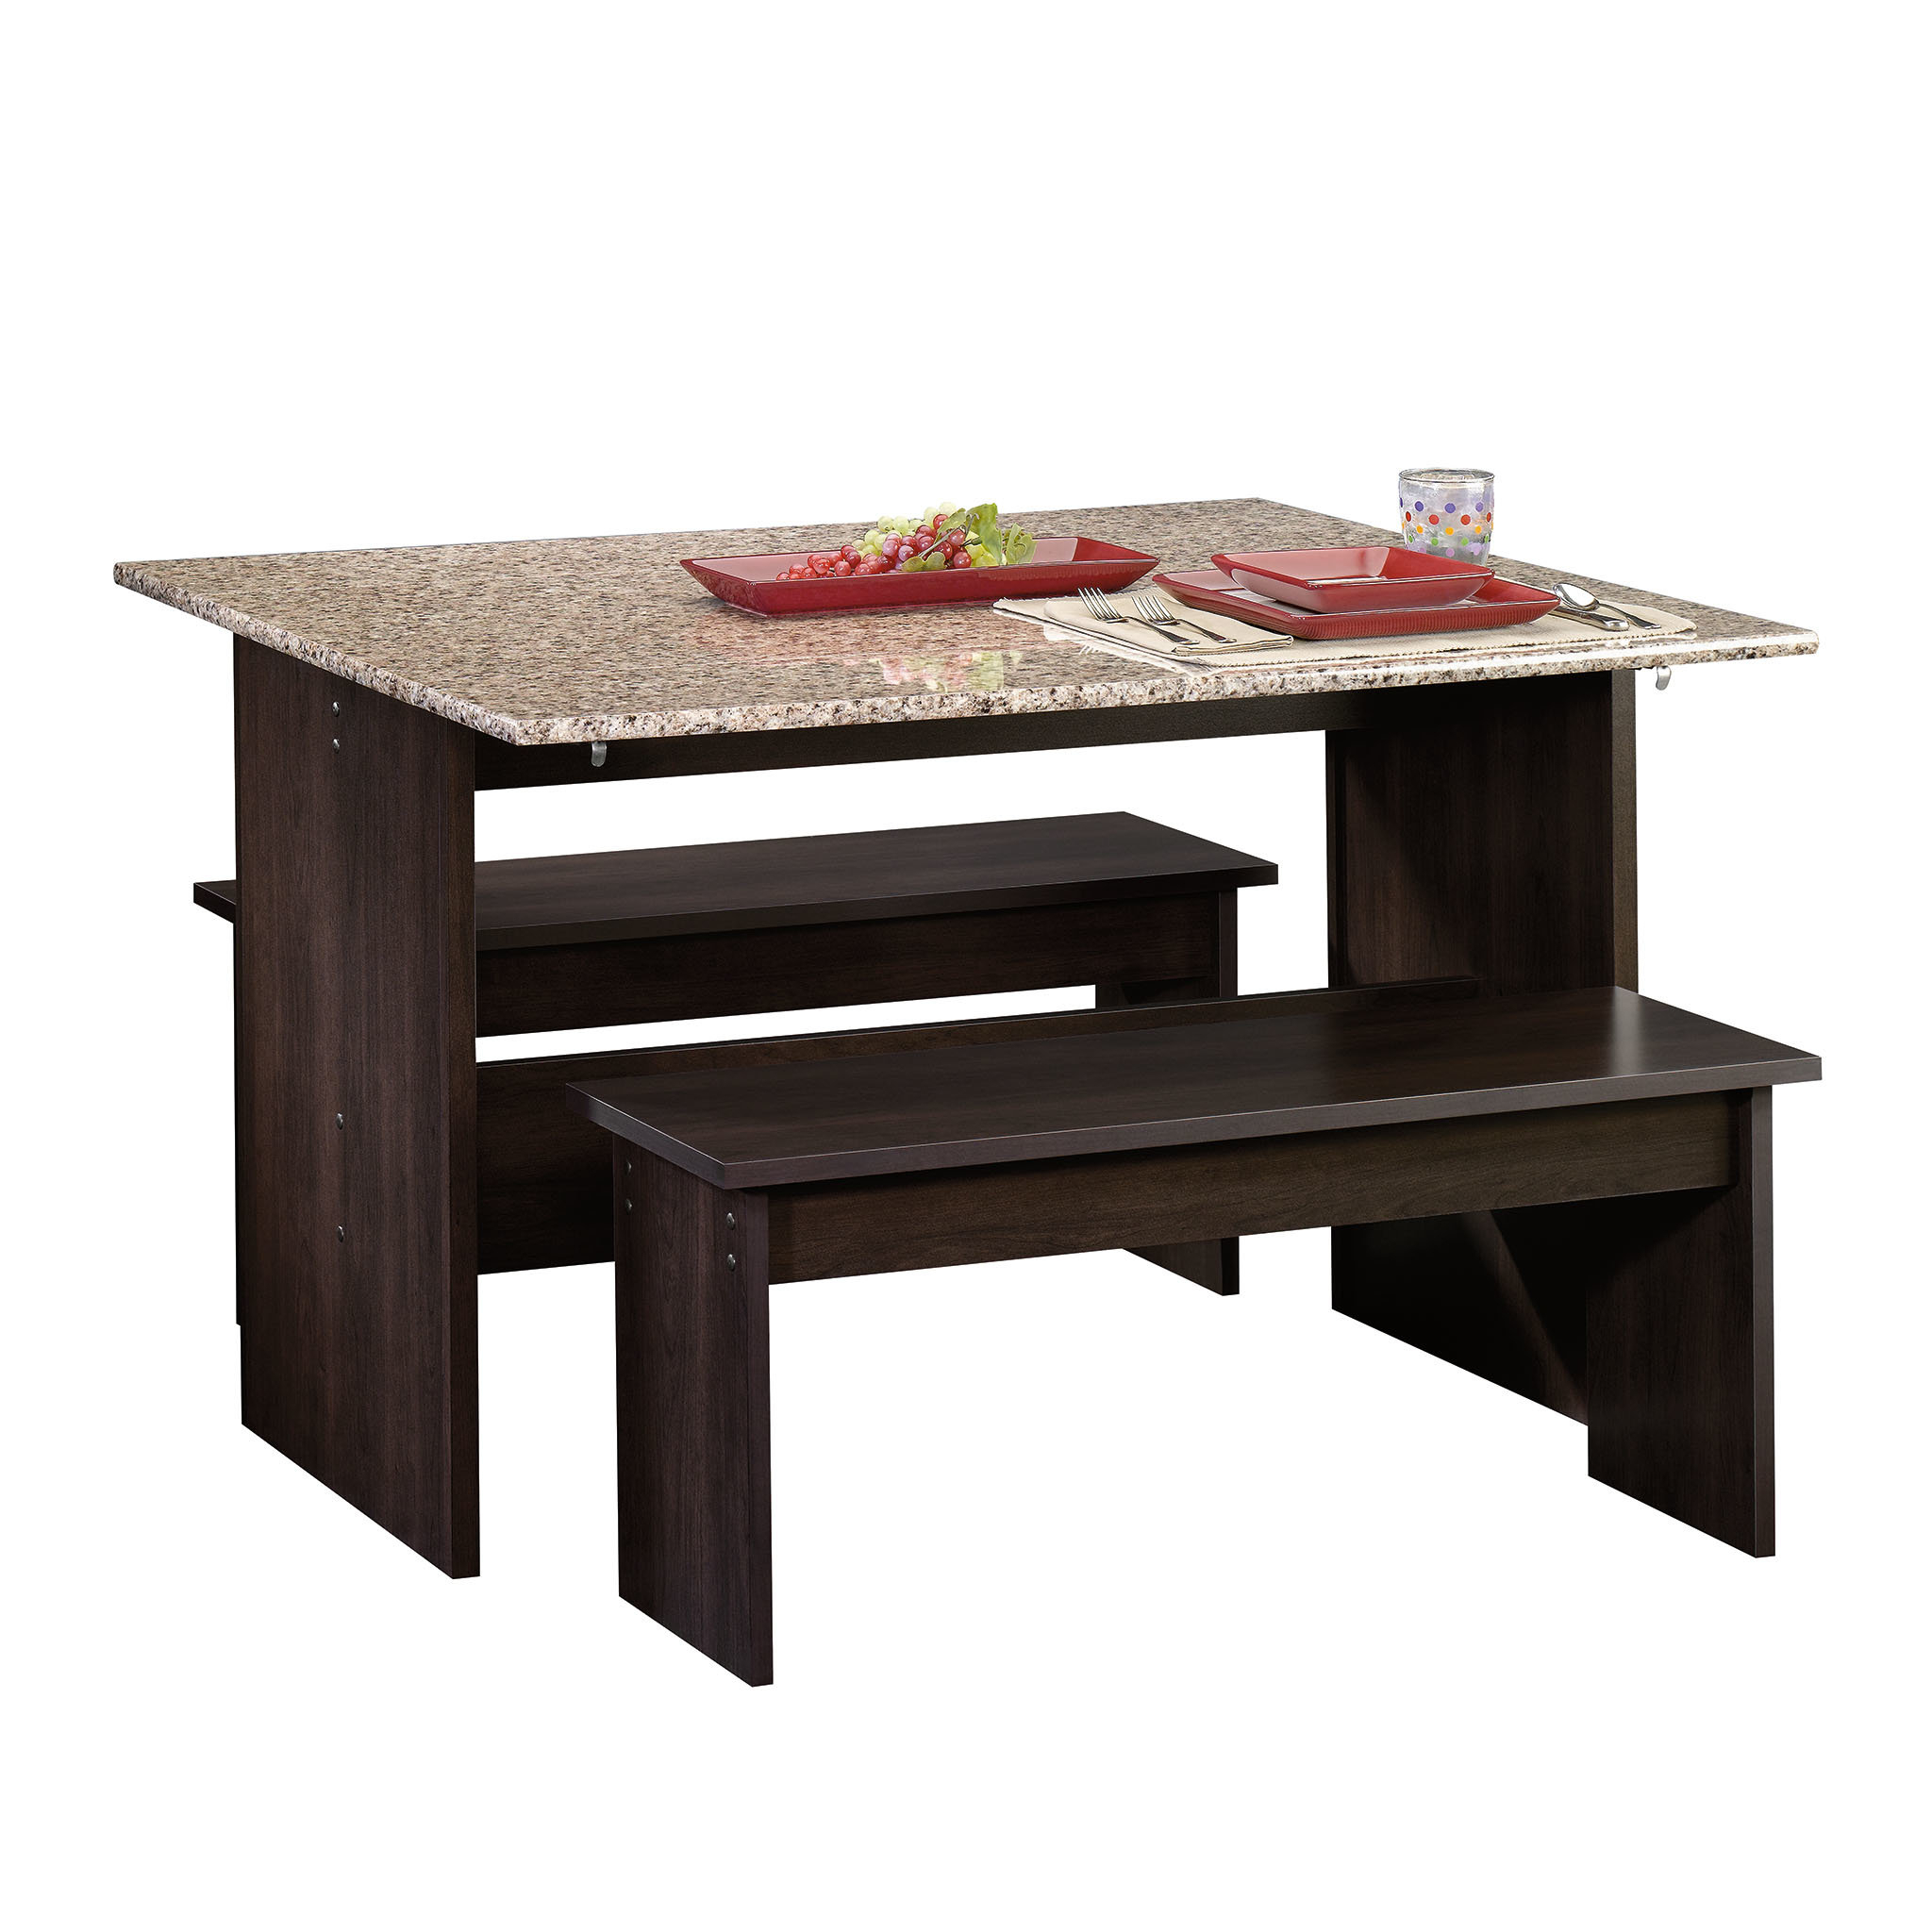 Ryker 3 Piece Dining Set Within Most Popular Ryker 3 Piece Dining Sets (Photo 2 of 20)